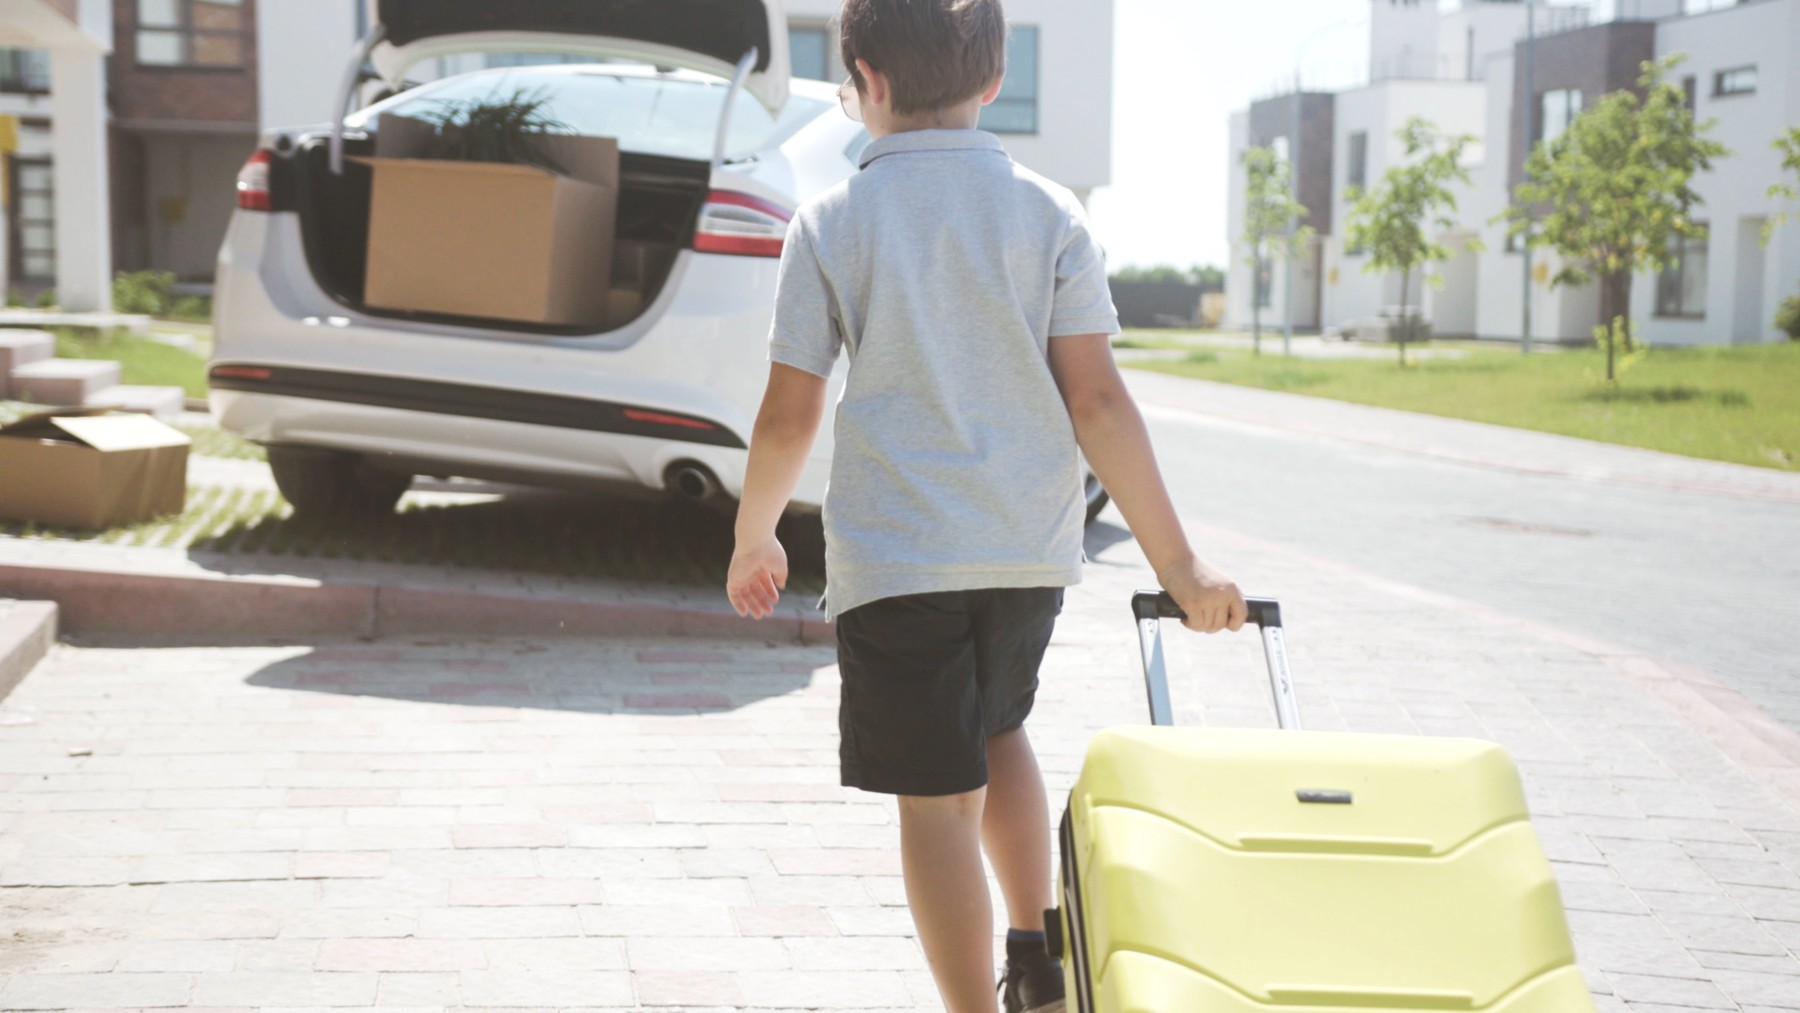 import car Switzerland, young boy with luggage walks to car